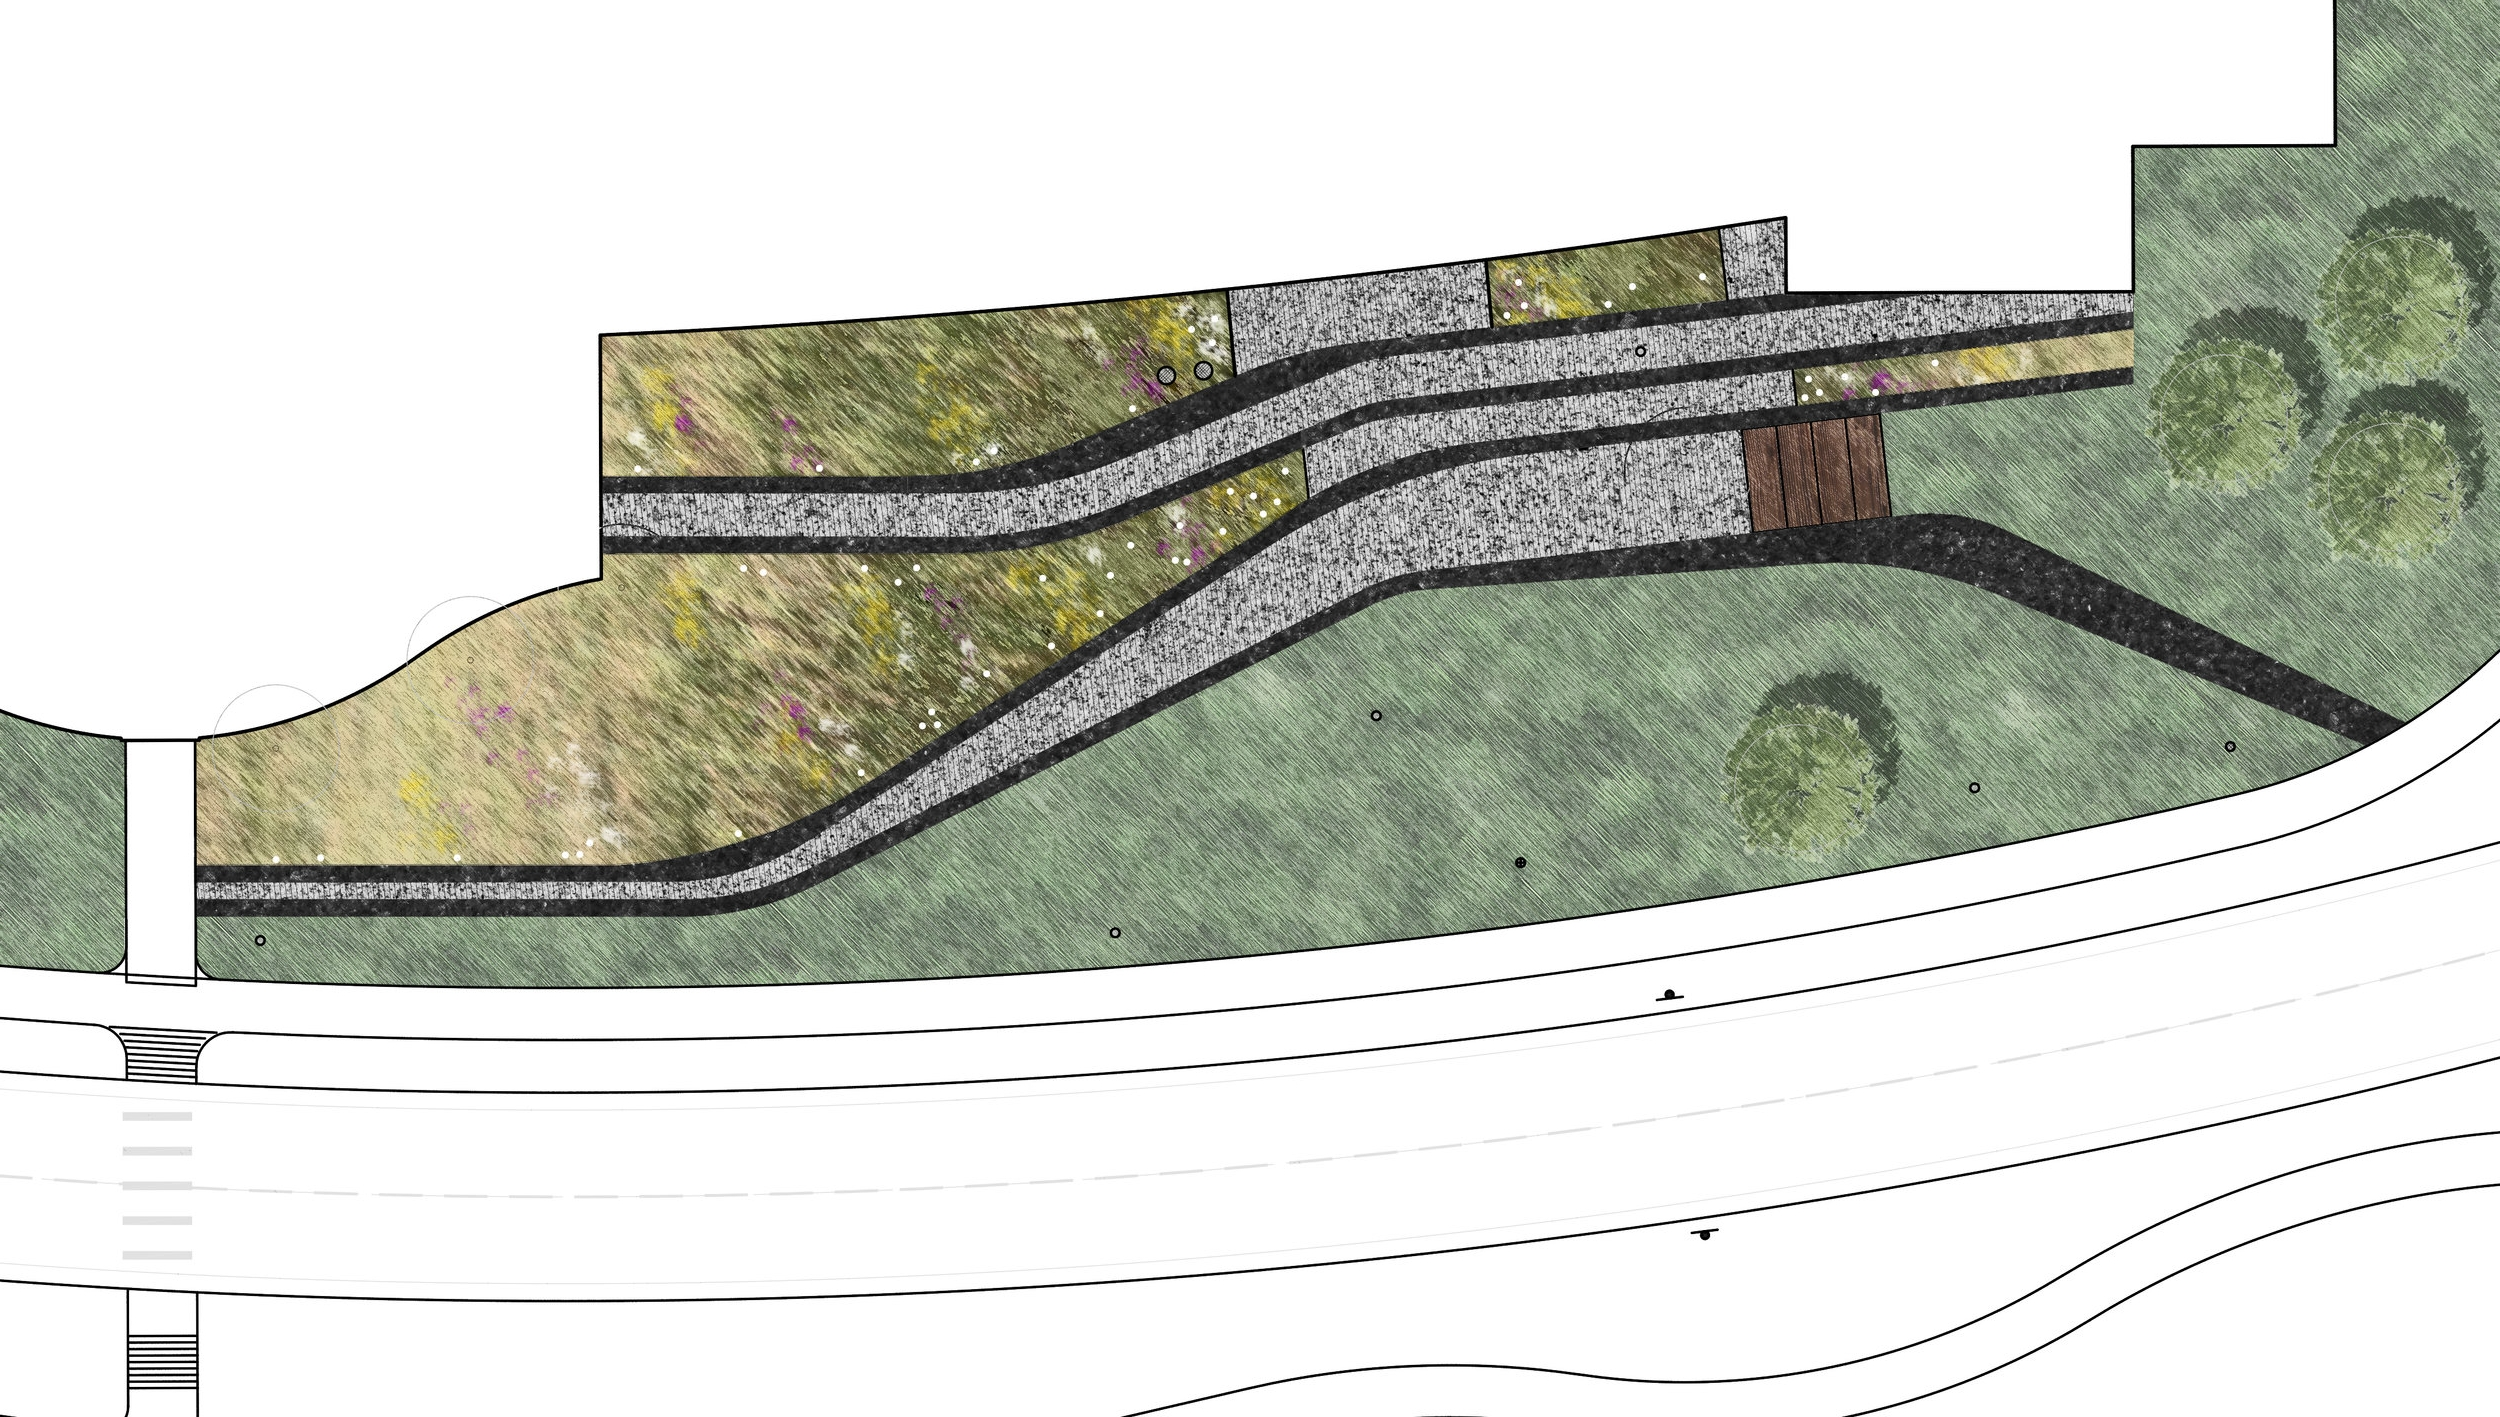 LibertyMedia_SD_PLN Materials Reference (with turf)_sketch.jpg